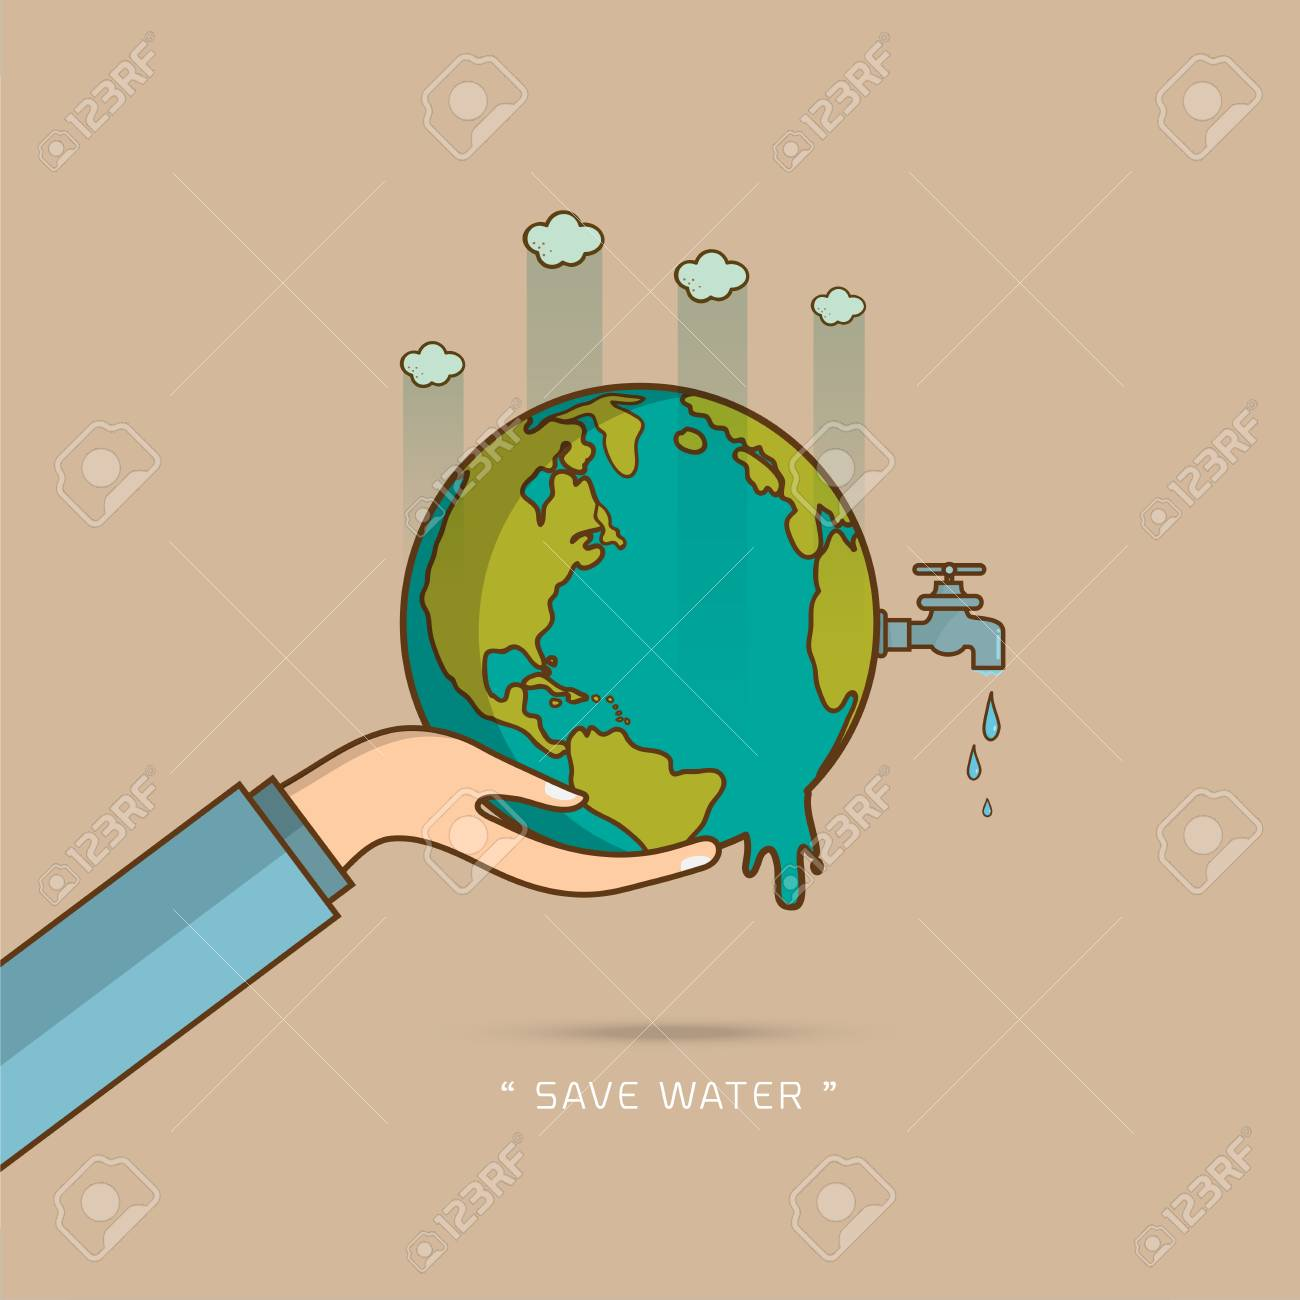 Water World Day With Hand Hold Faucet Or Water Tap With A Drop ...